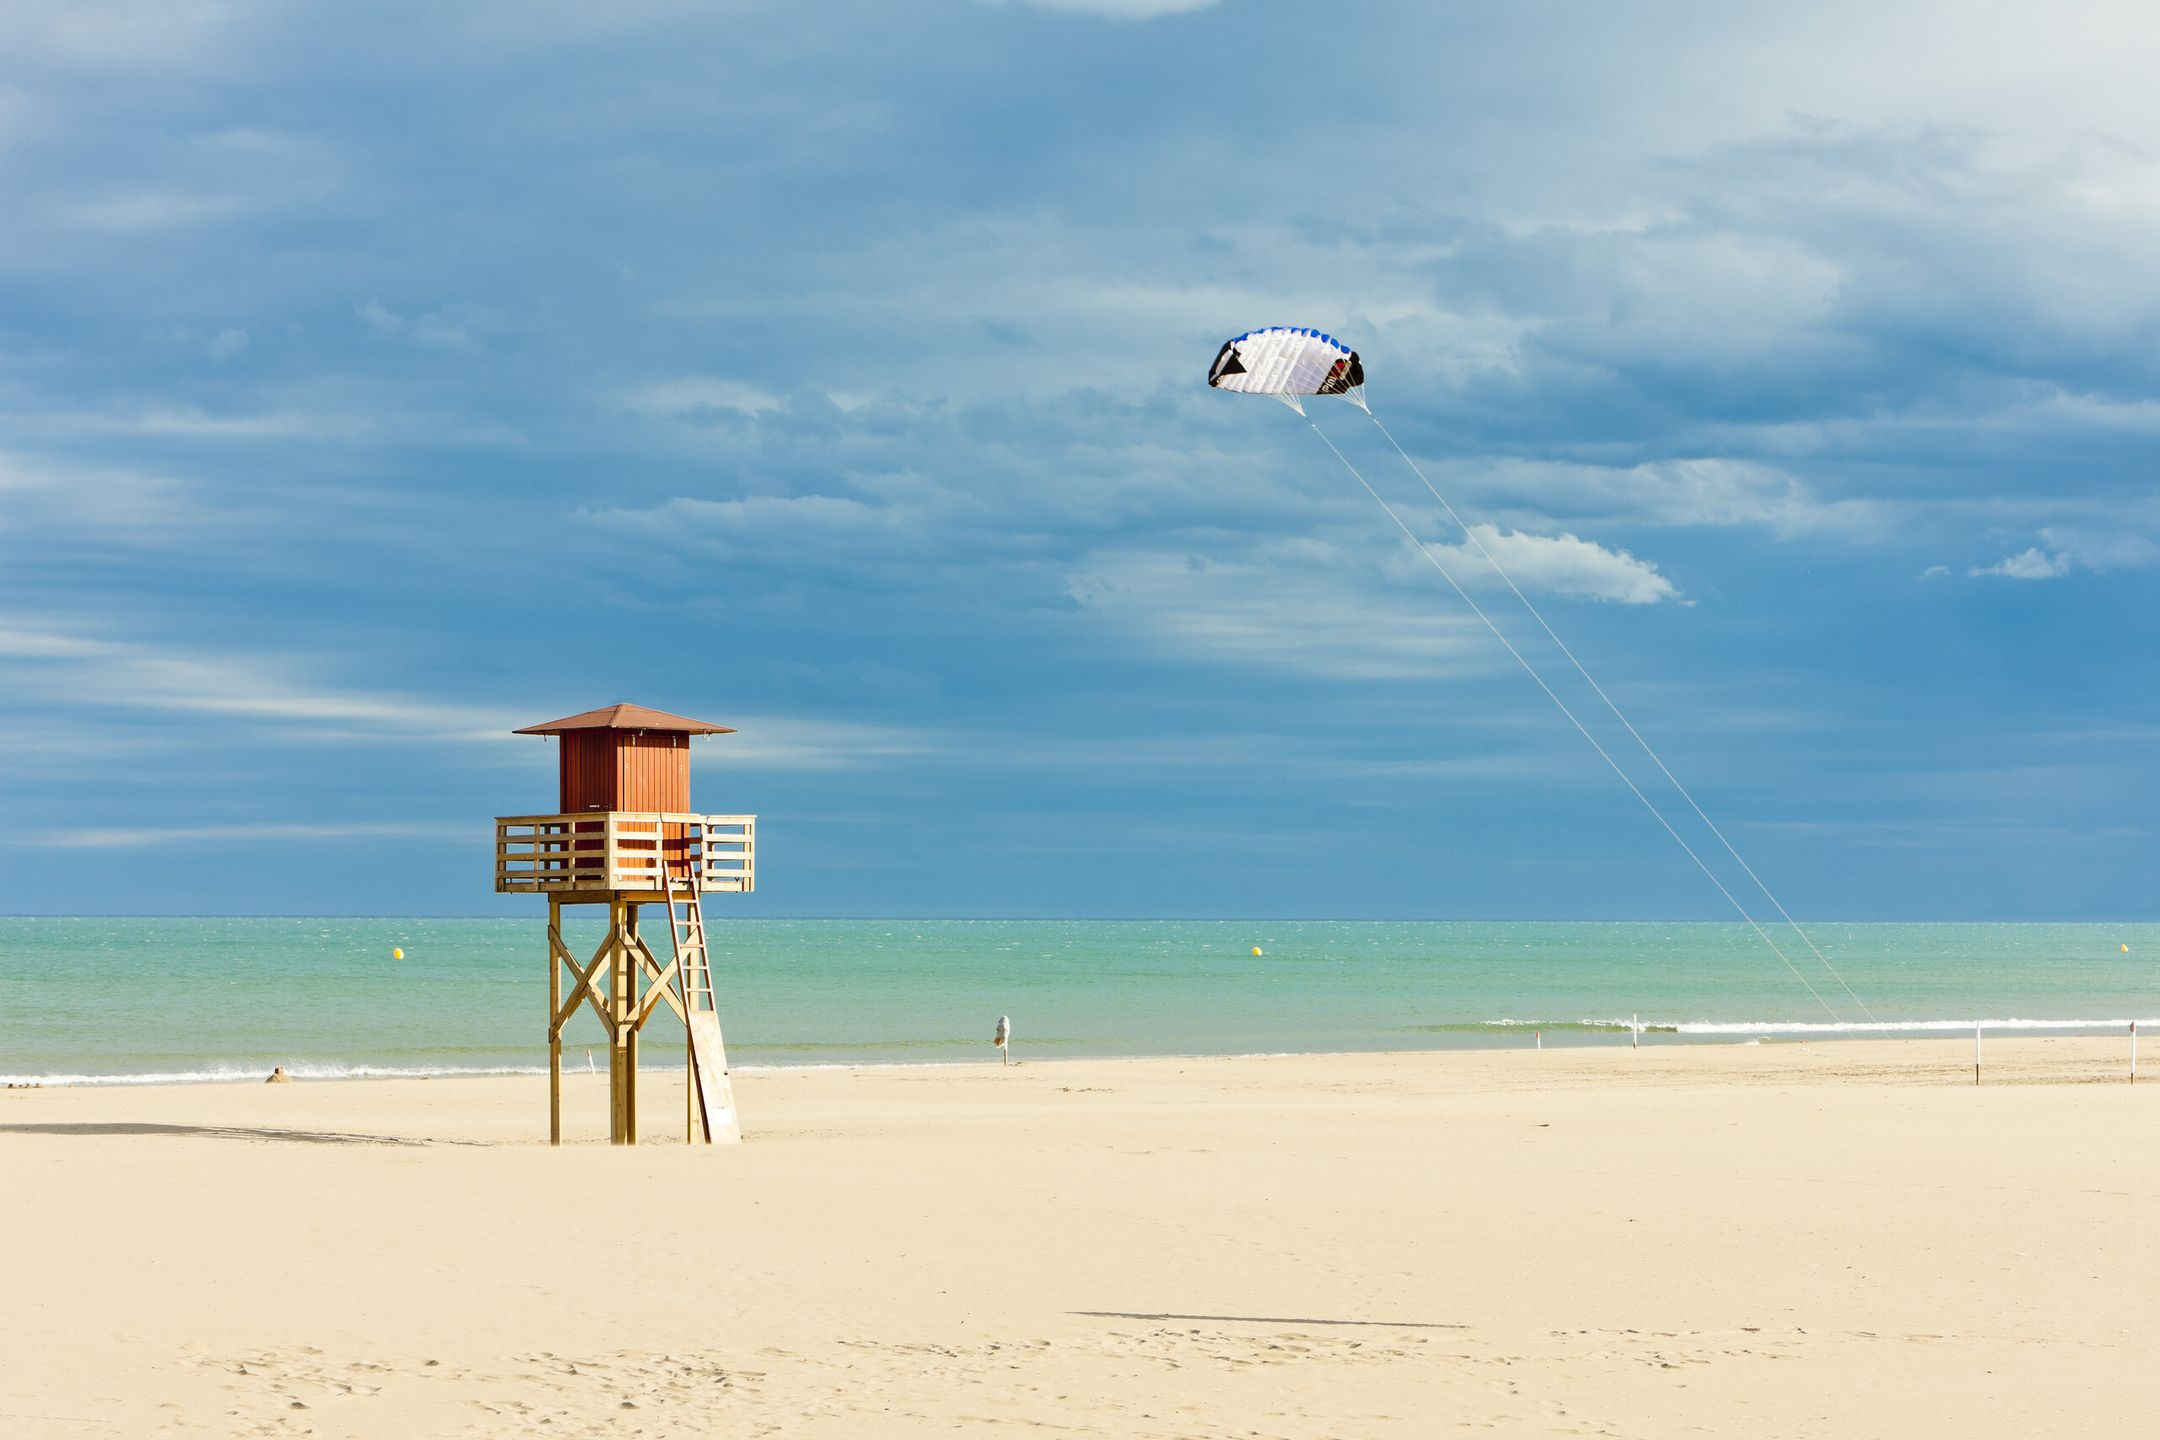 kitesurfing France kitespot Gruissan ripatrip travel big